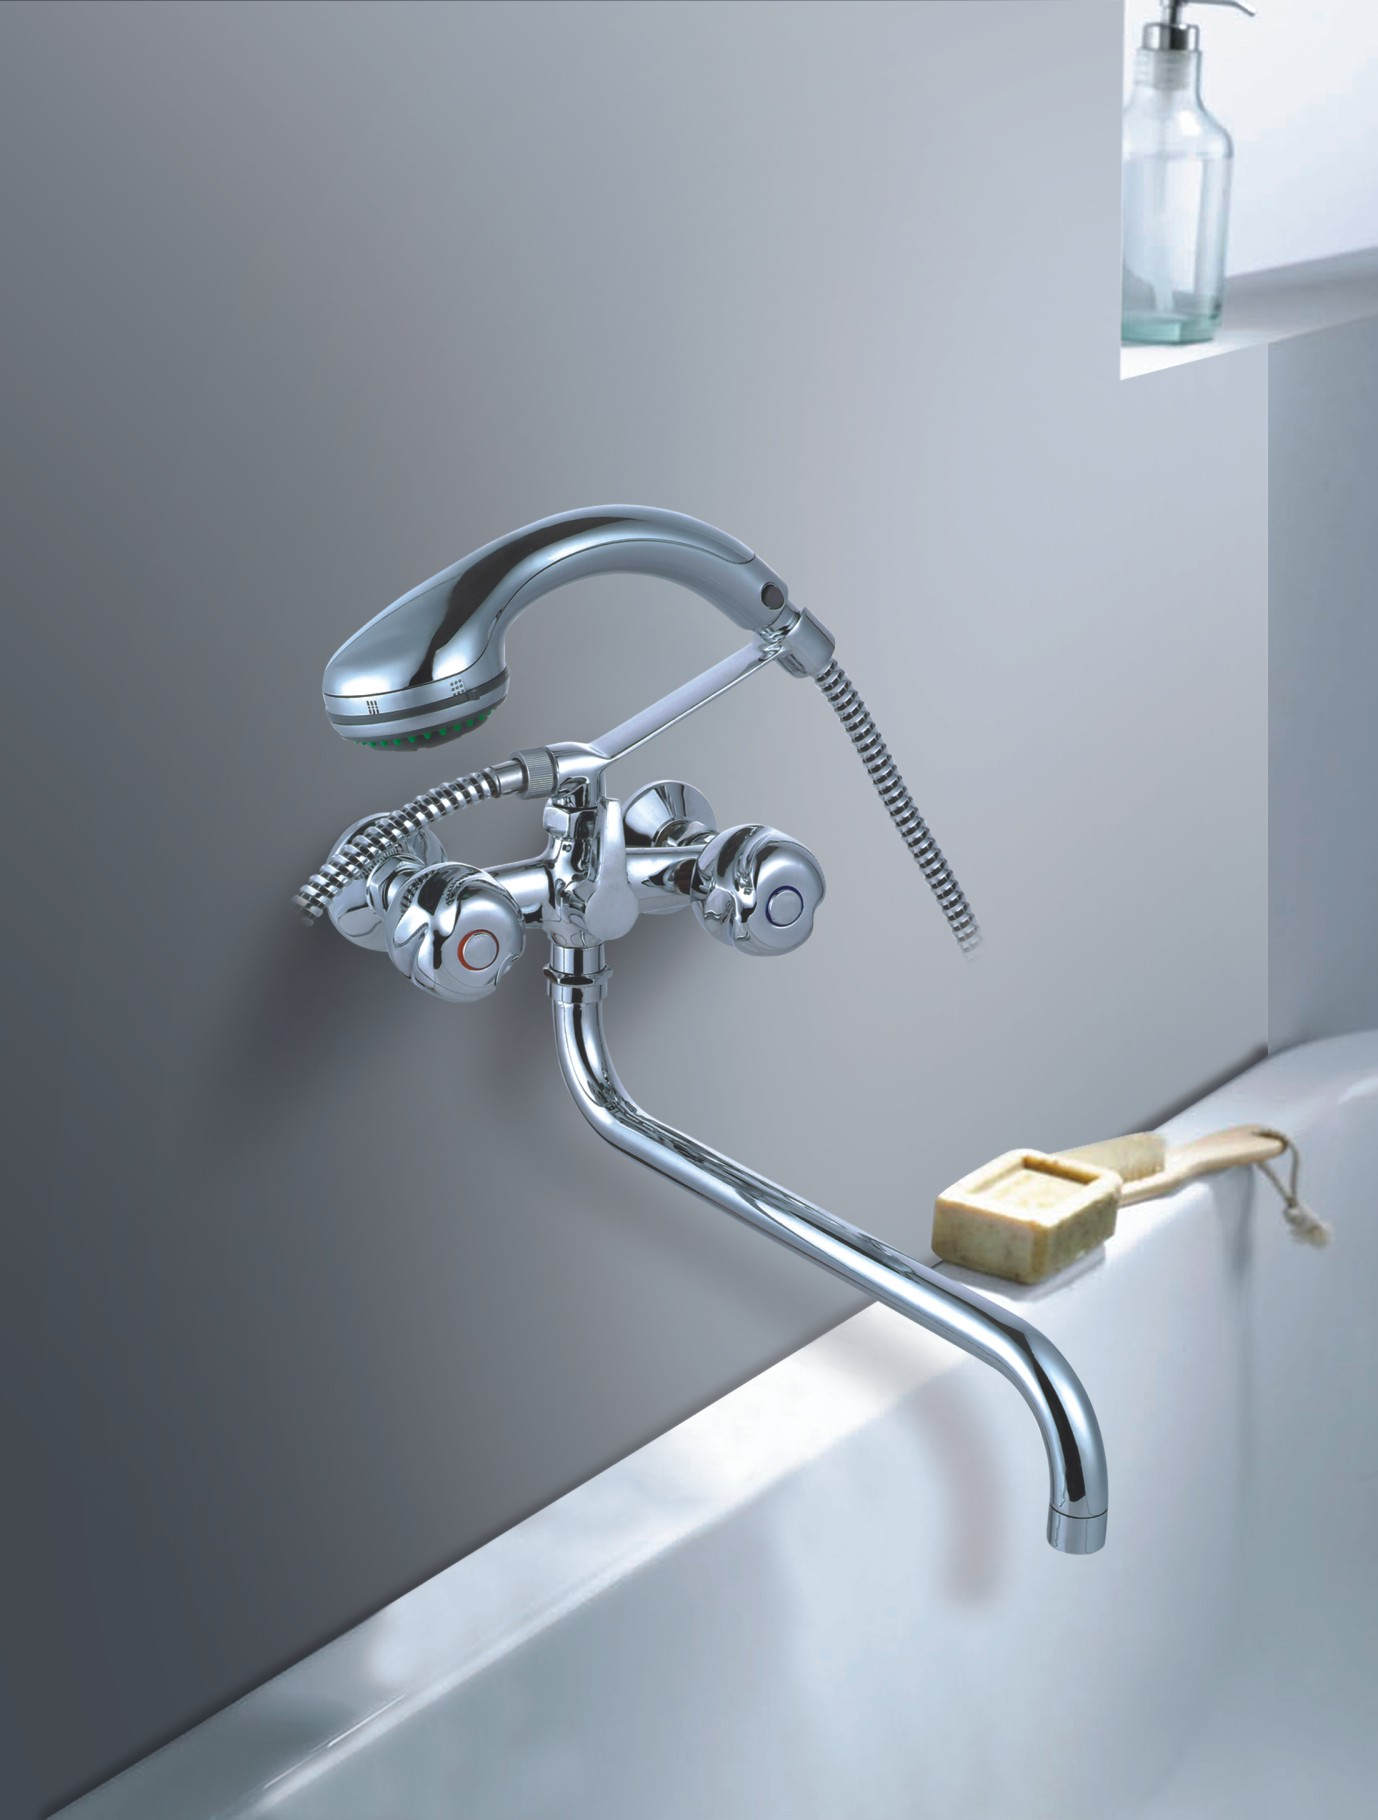 How high should the bathtub faucet generally be? Analysis of ...